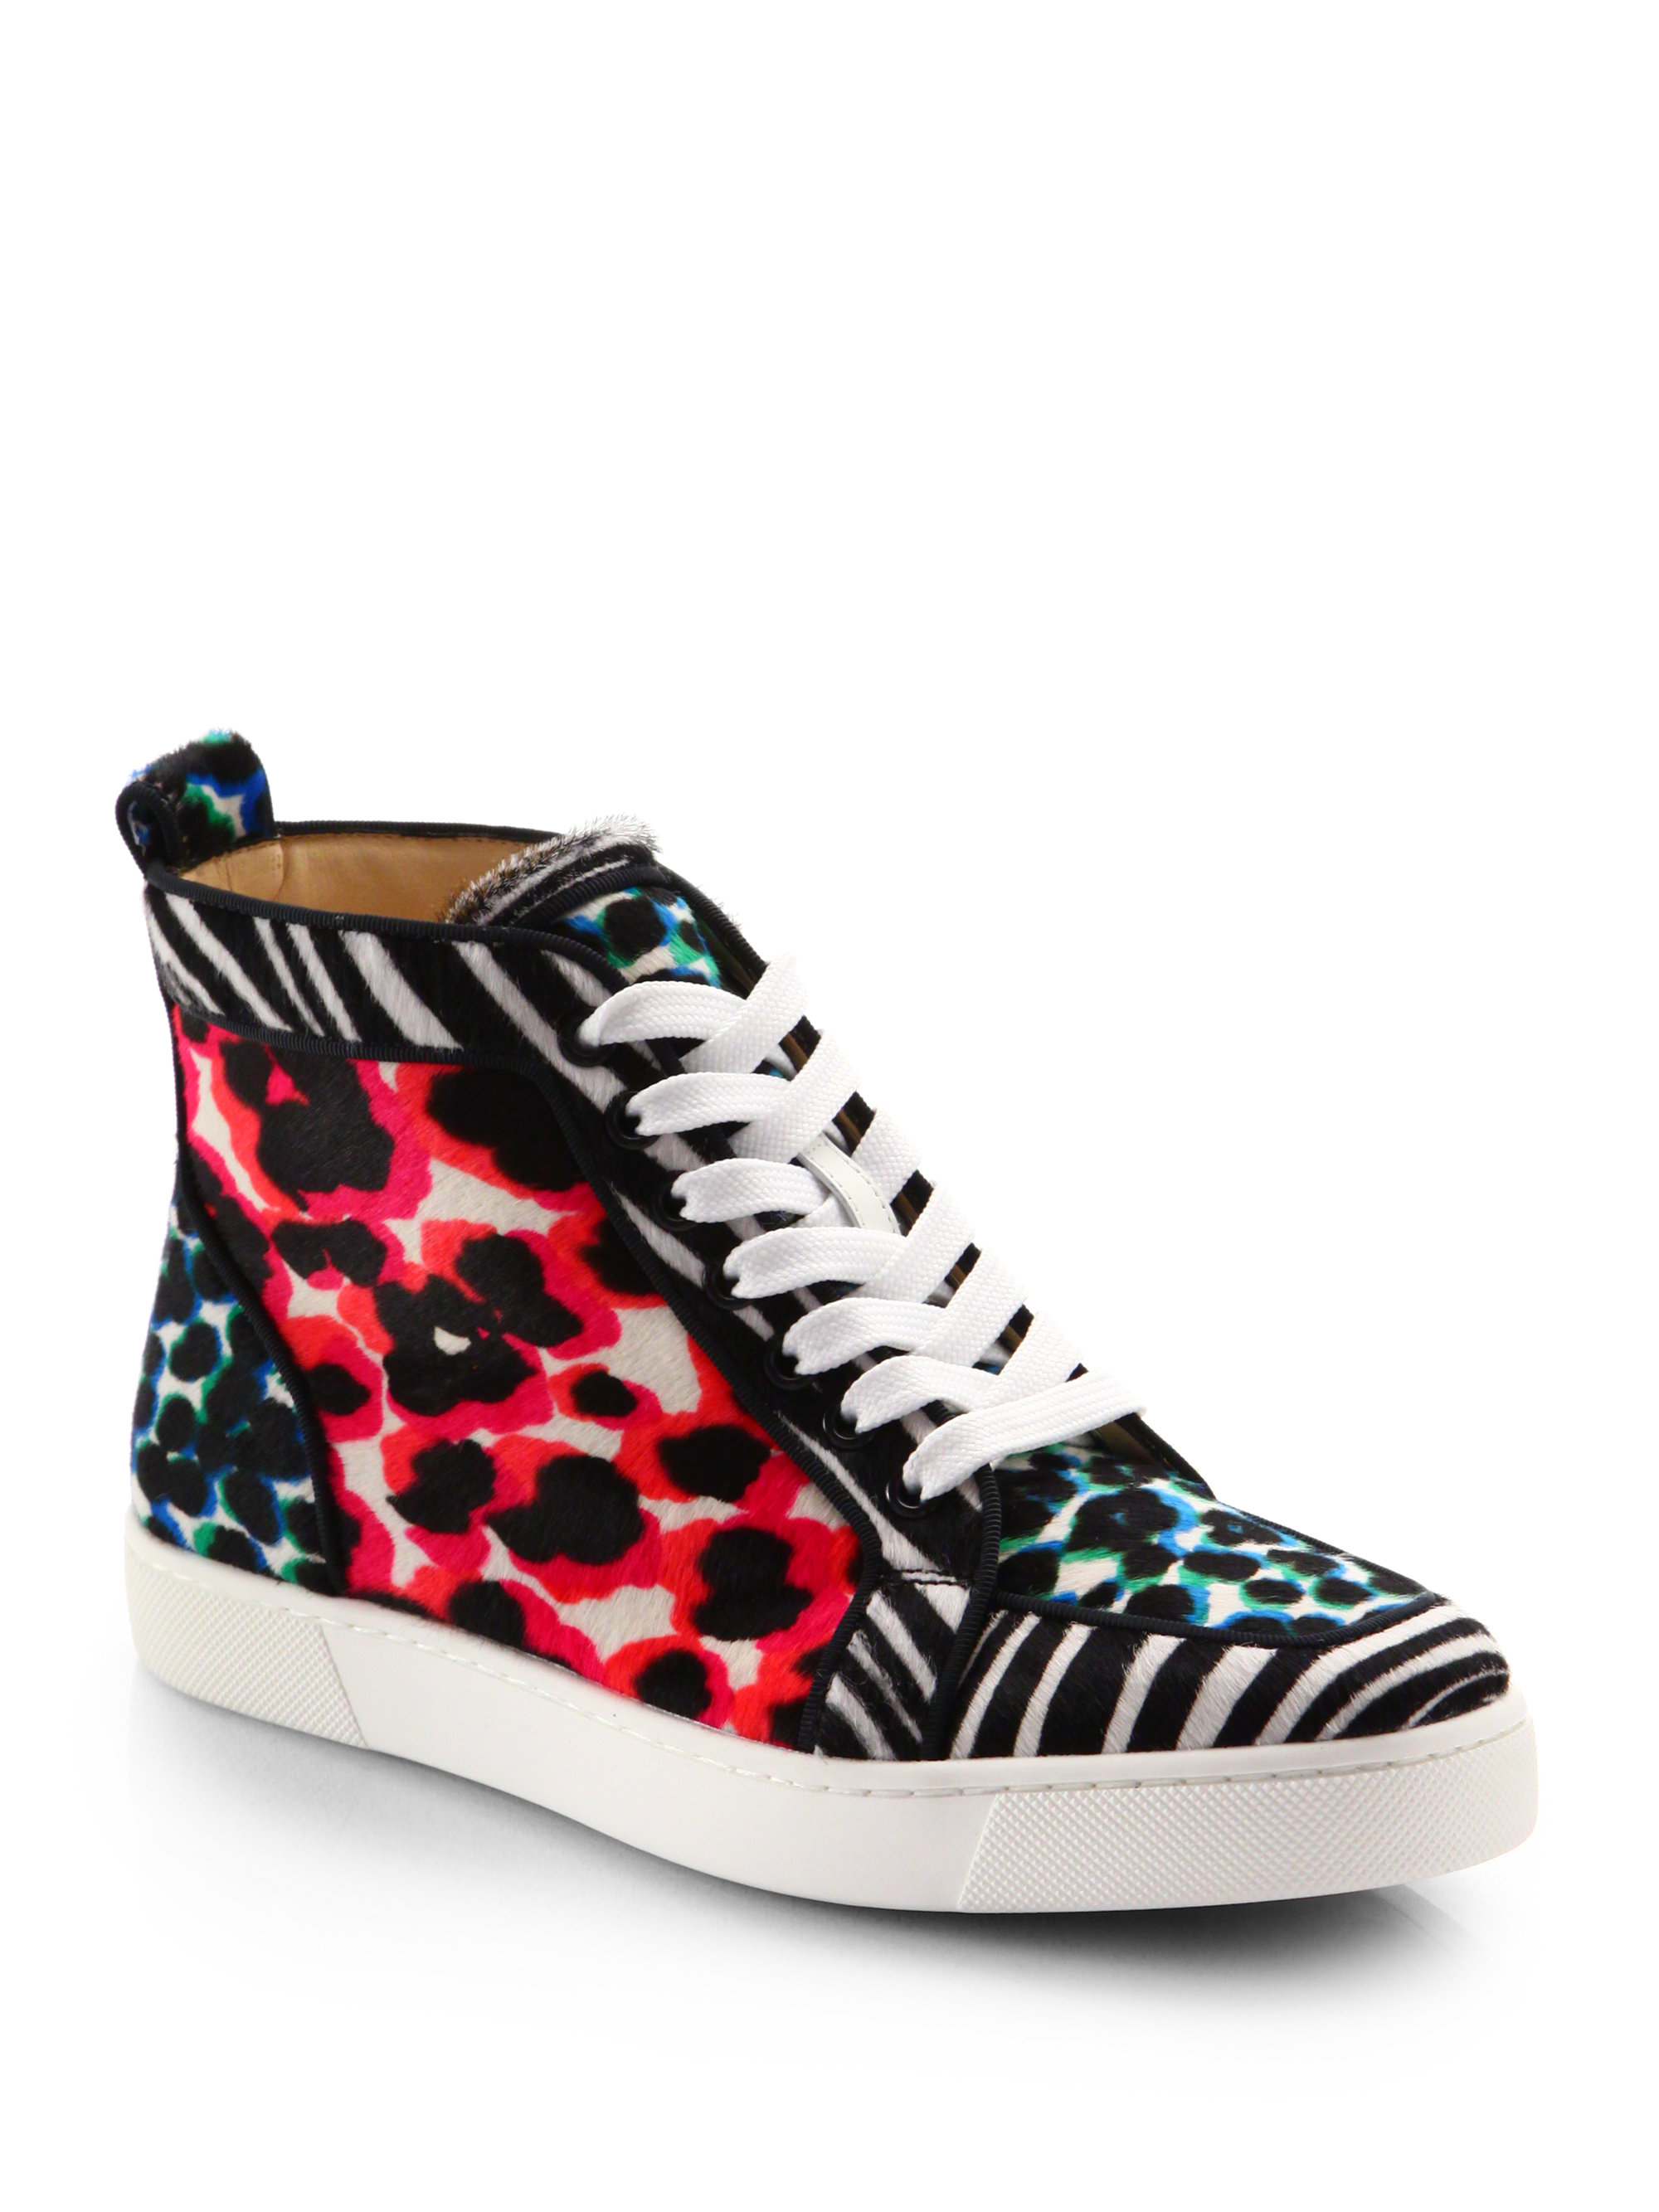 aeed1c77a3a Christian Louboutin Multicolor Animalprint Pony Hair Hightop Sneakers